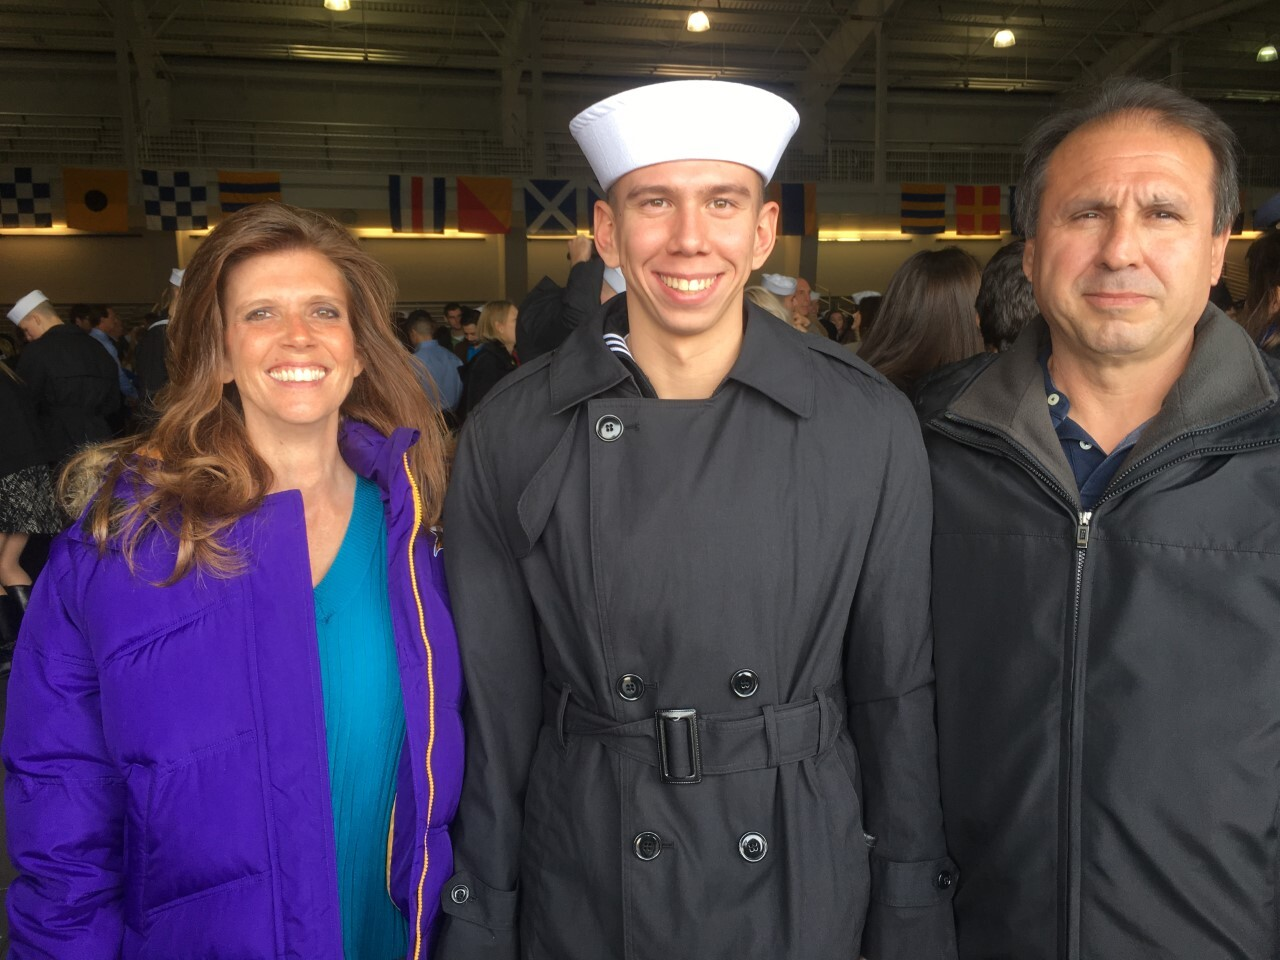 Photos: Family of Sailor who committed suicide at Naval Station Norfolk pushes forchange